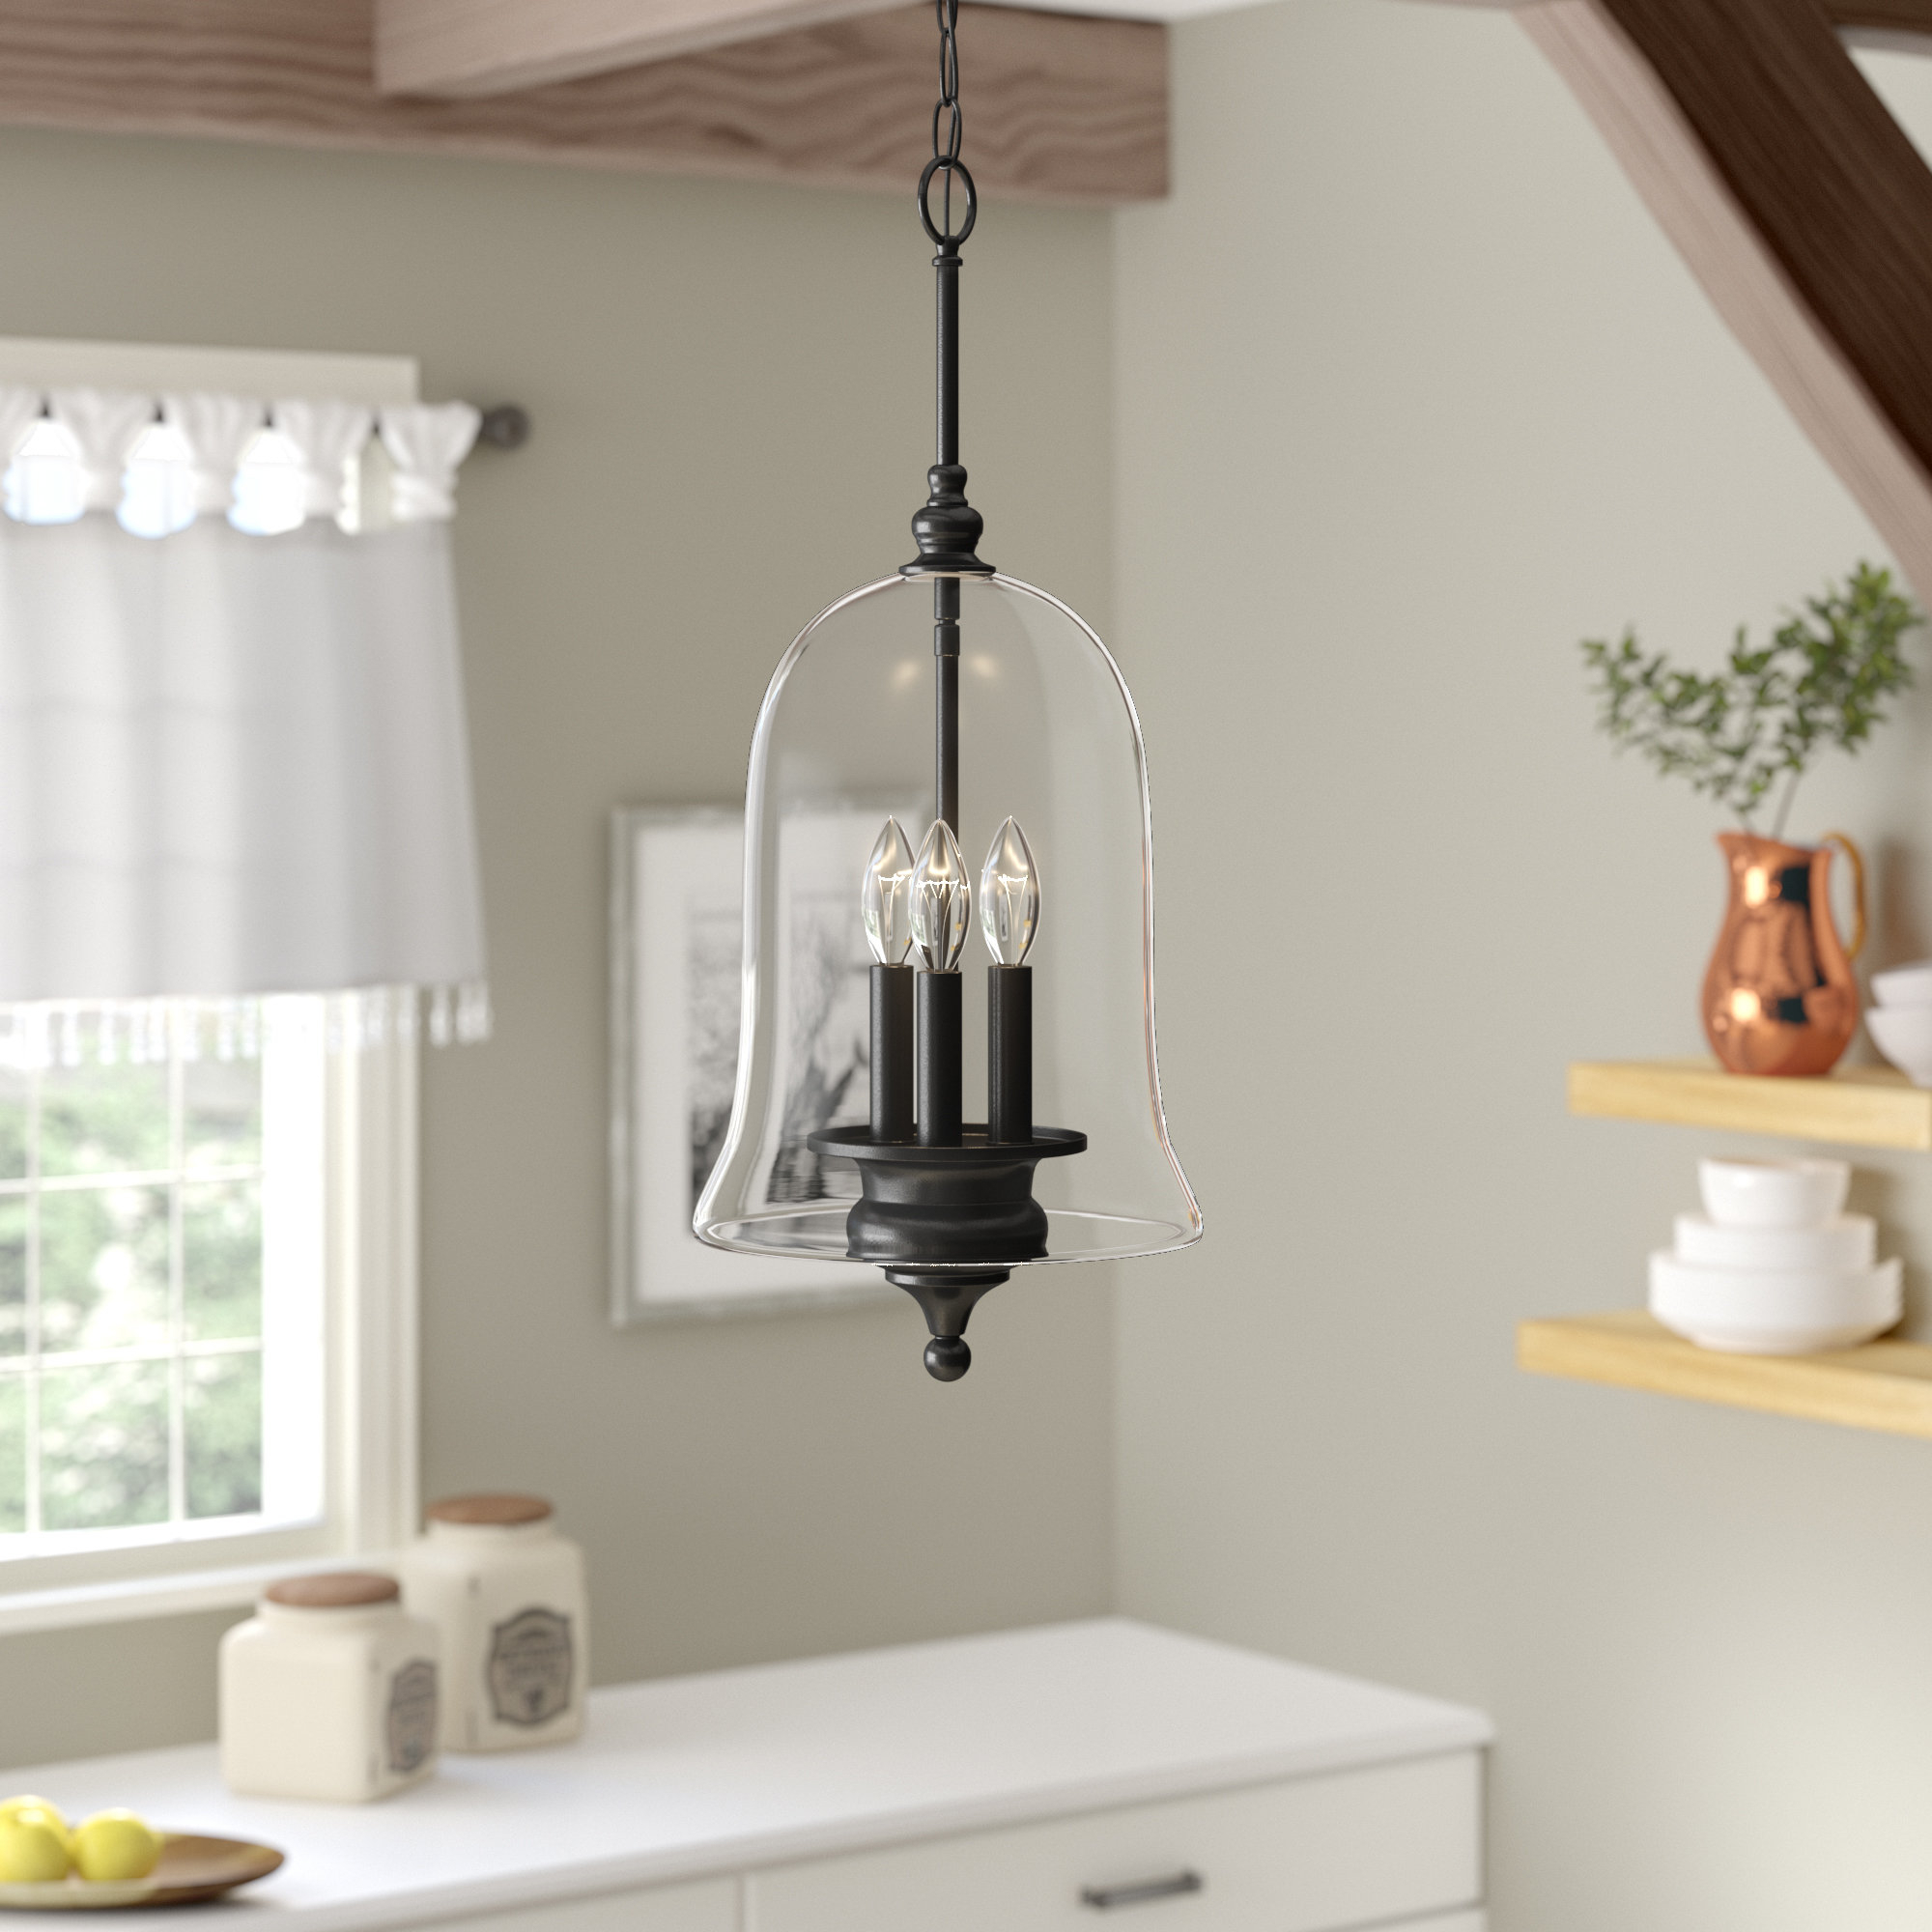 Youngberg 3 Light Single Bell Pendant Throughout Fashionable Dirksen 3 Light Single Cylinder Chandeliers (Gallery 5 of 20)